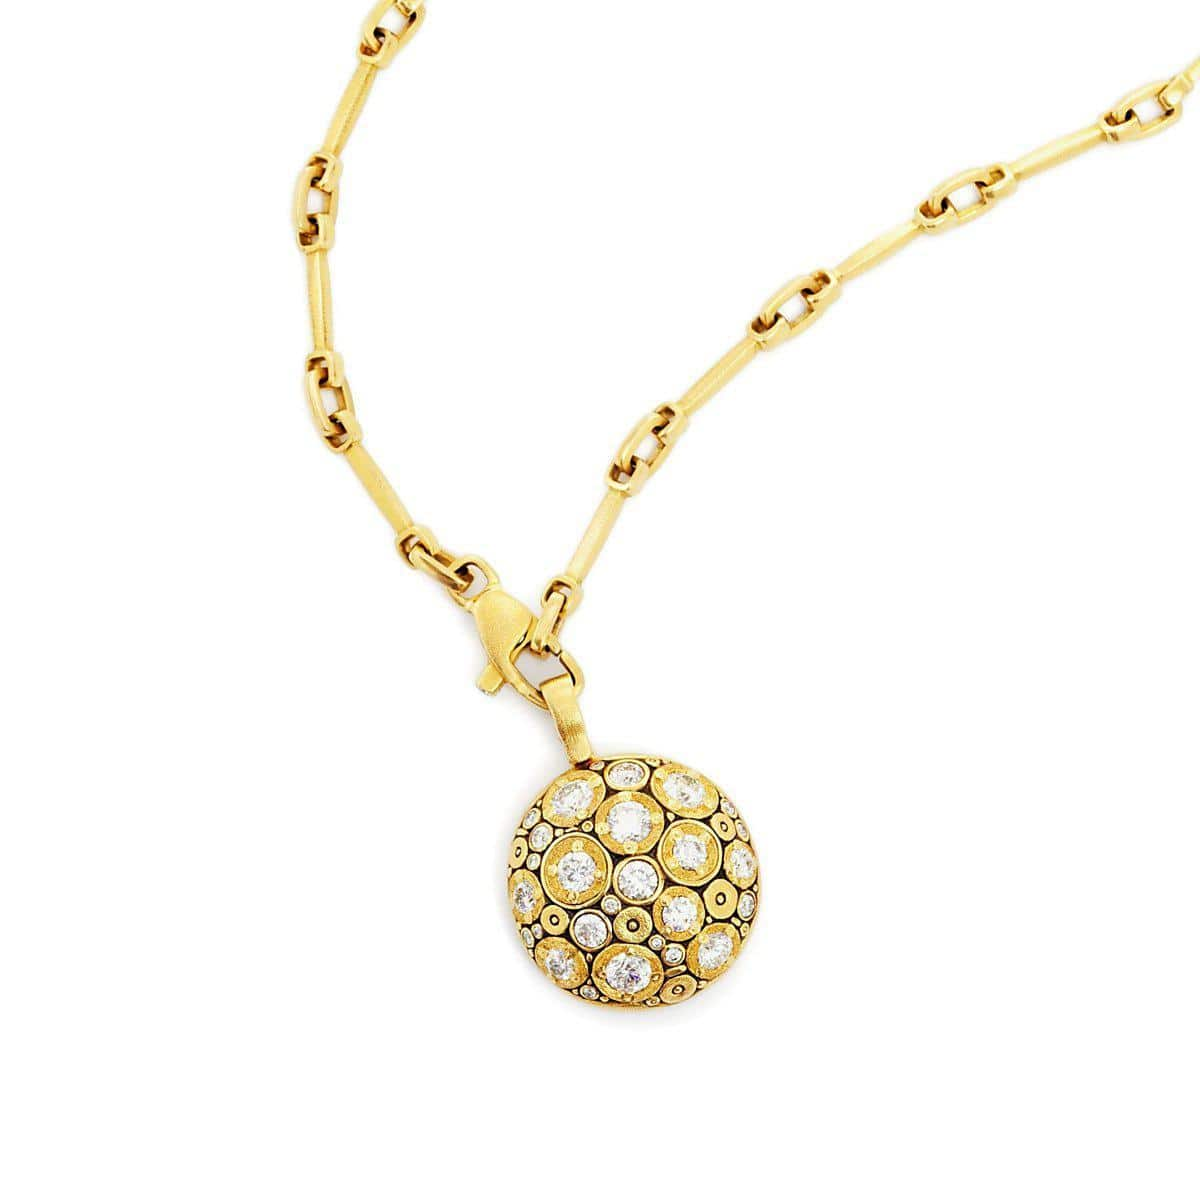 18K Blooming Hill Diamond Pendant - M-49D-Alex Sepkus-Renee Taylor Gallery